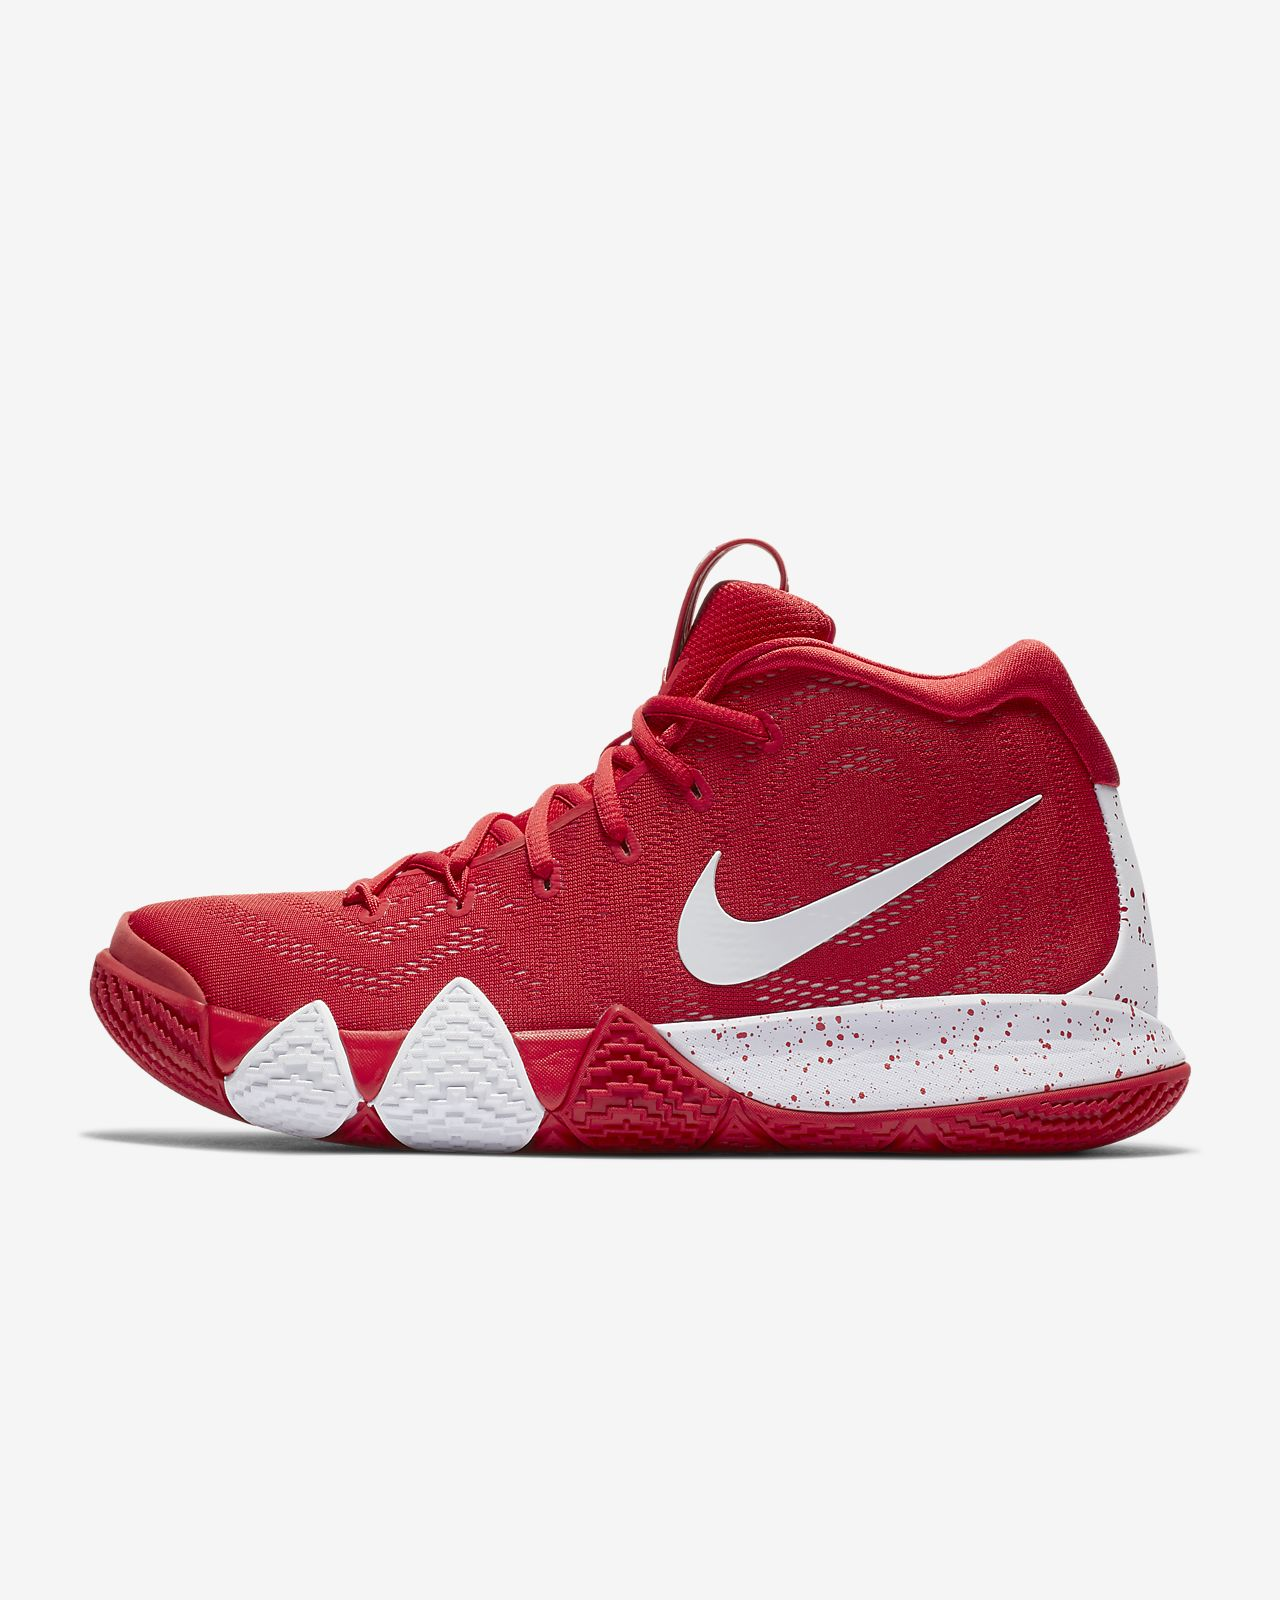 competitive price 2a281 66efb Kyrie 4 (Team) Basketball Shoe. Nike.com